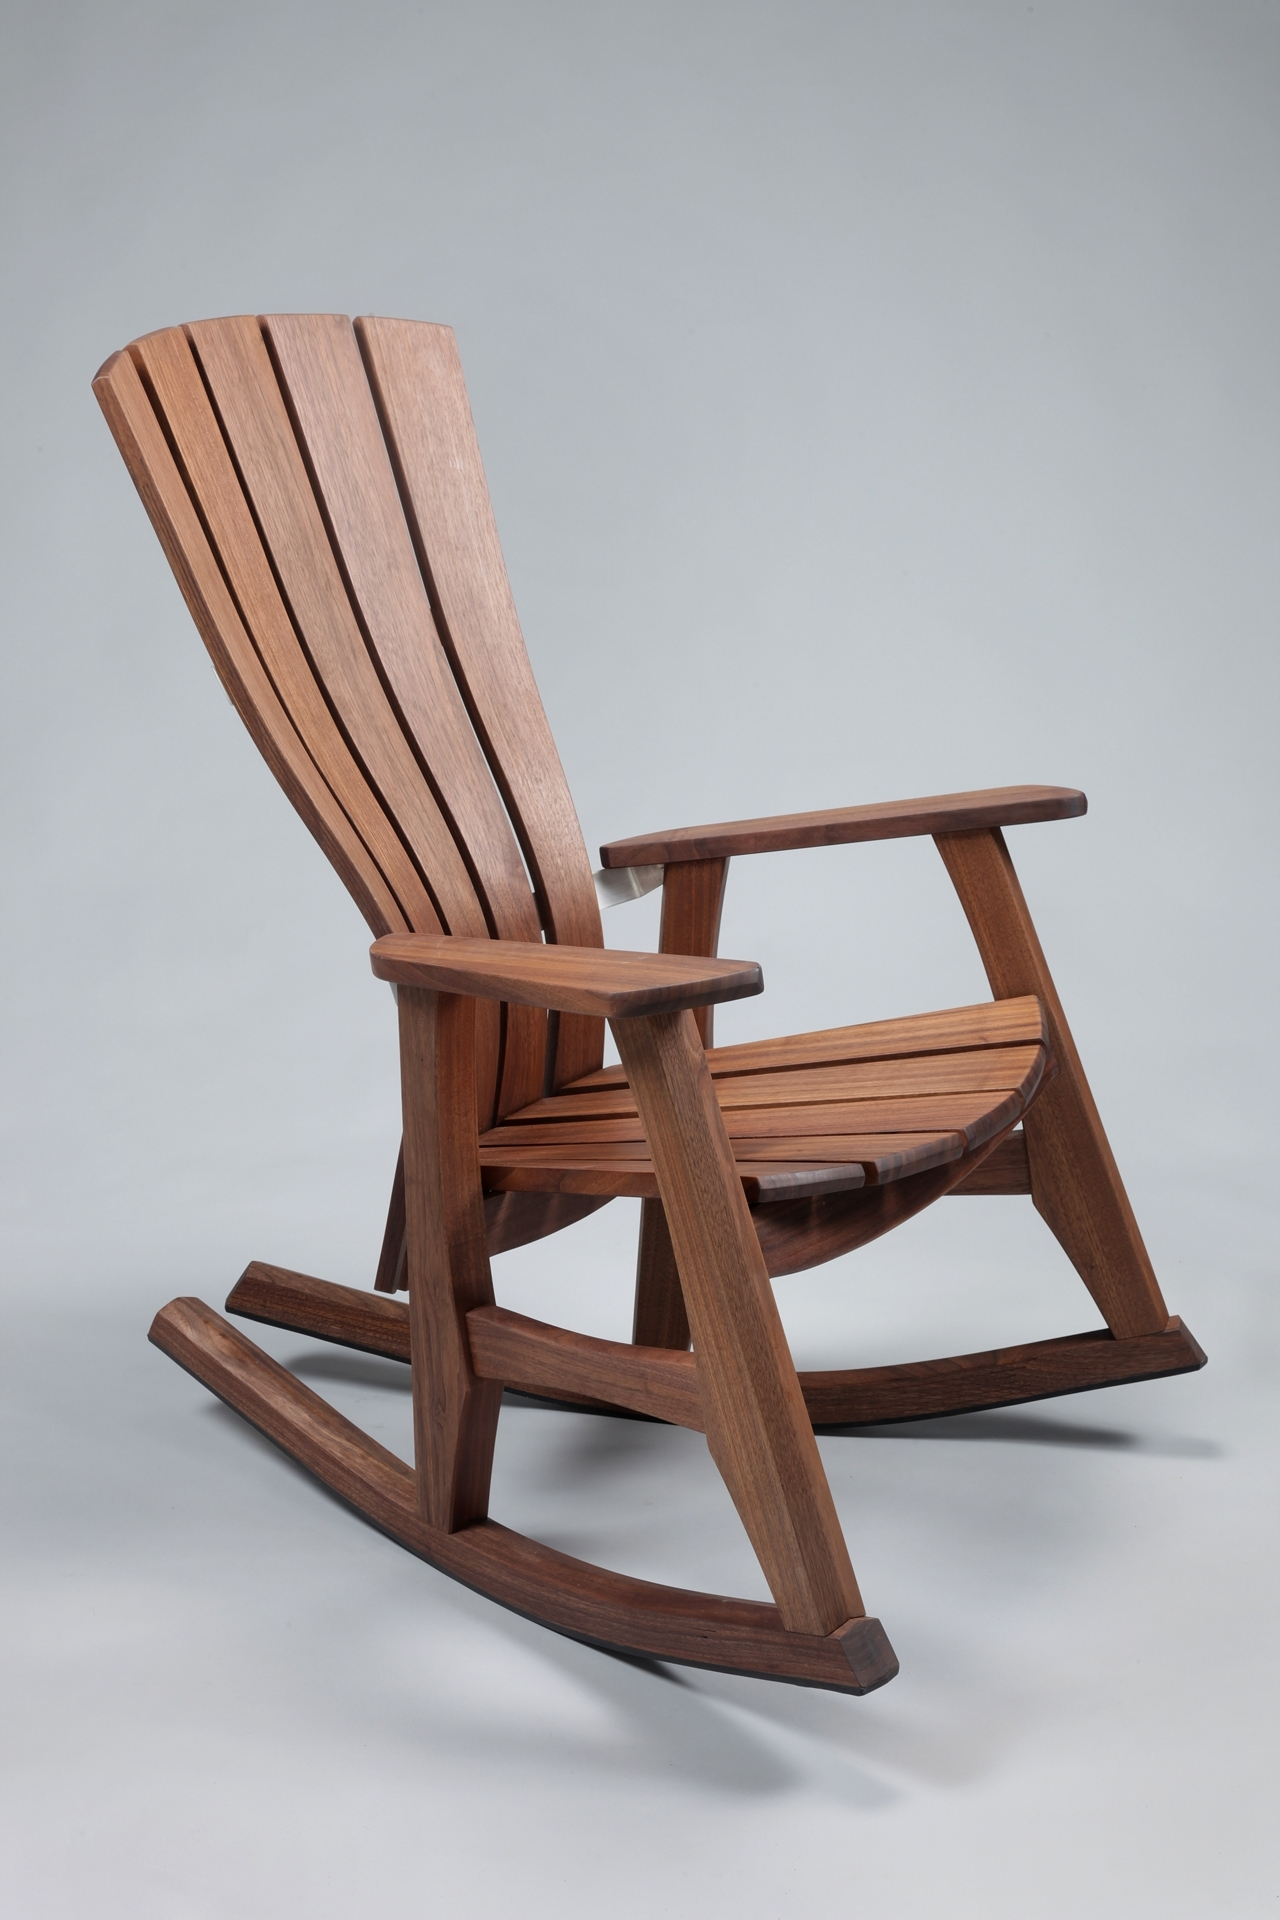 Vintage Outdoor Rocking Chairs In Well Liked Pleasure Outdoor Wooden Rocking Chairs (View 15 of 20)